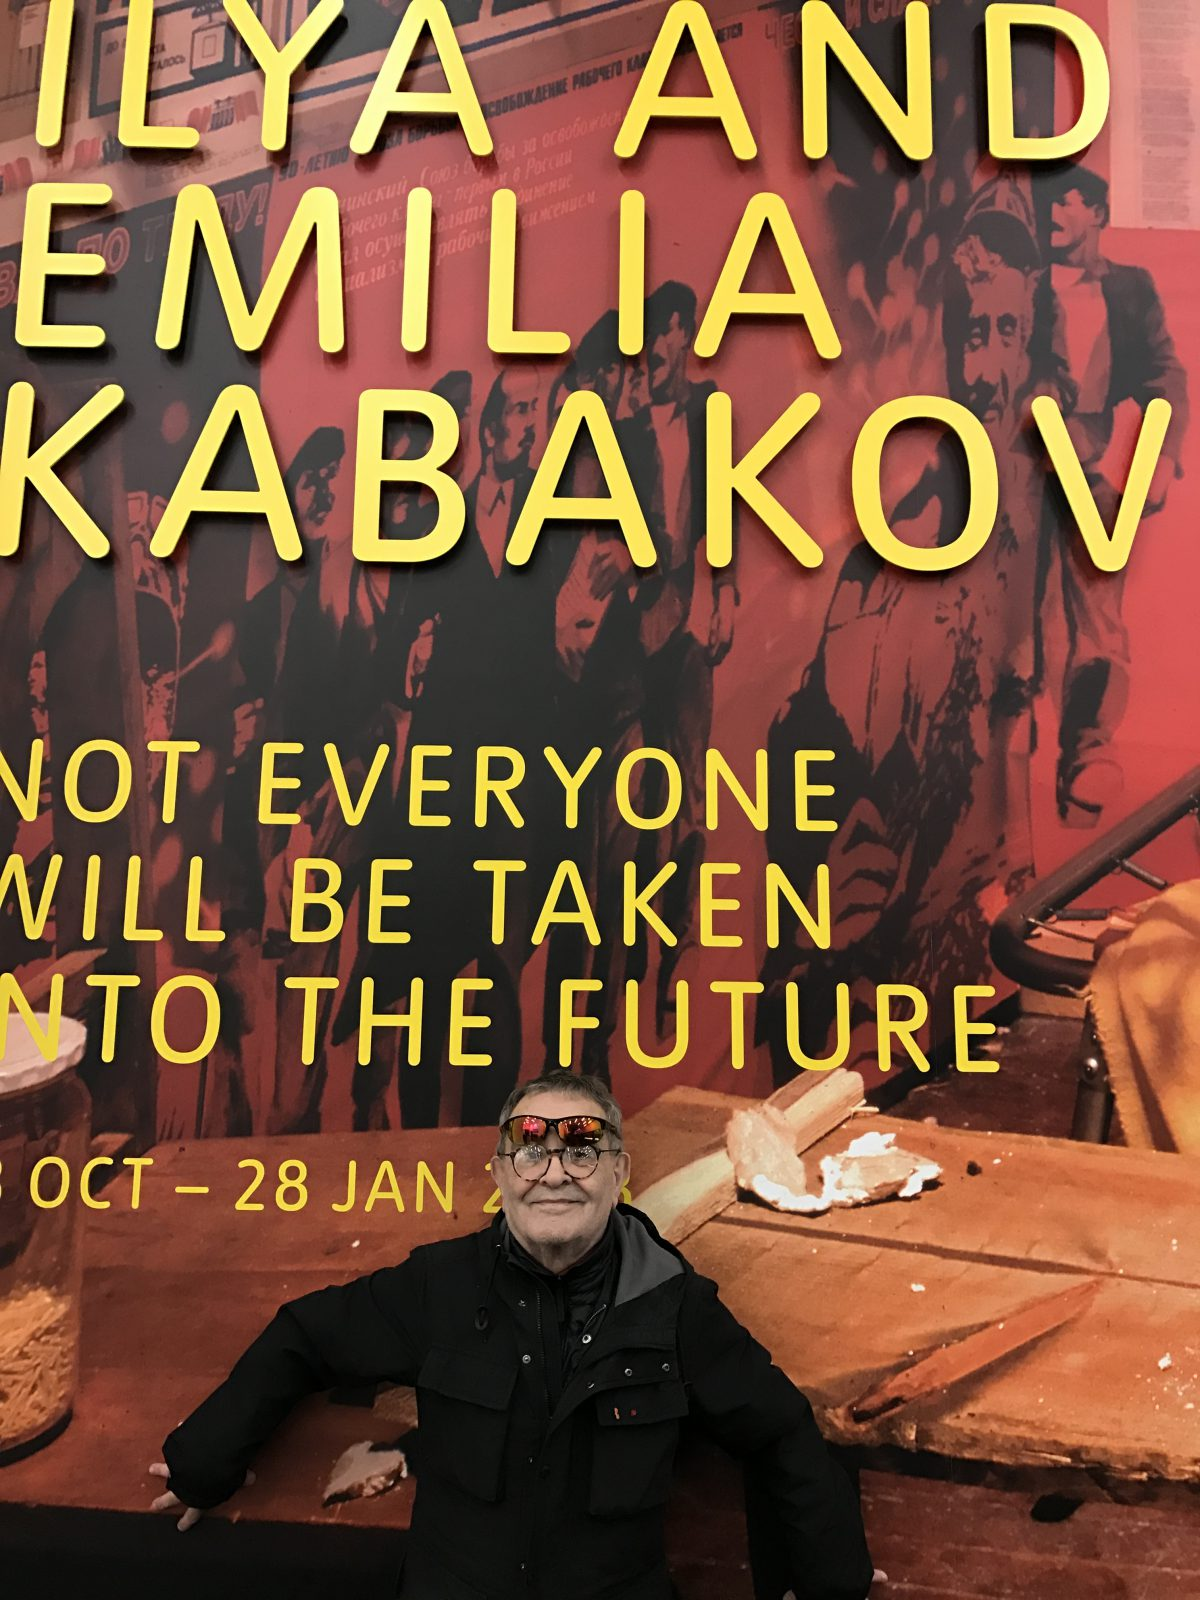 "Fernando Arrabal devant l'affiche du London Tate Museum ""Ilya and Emilia Kabakov: Not everyone will be taken into the future"""